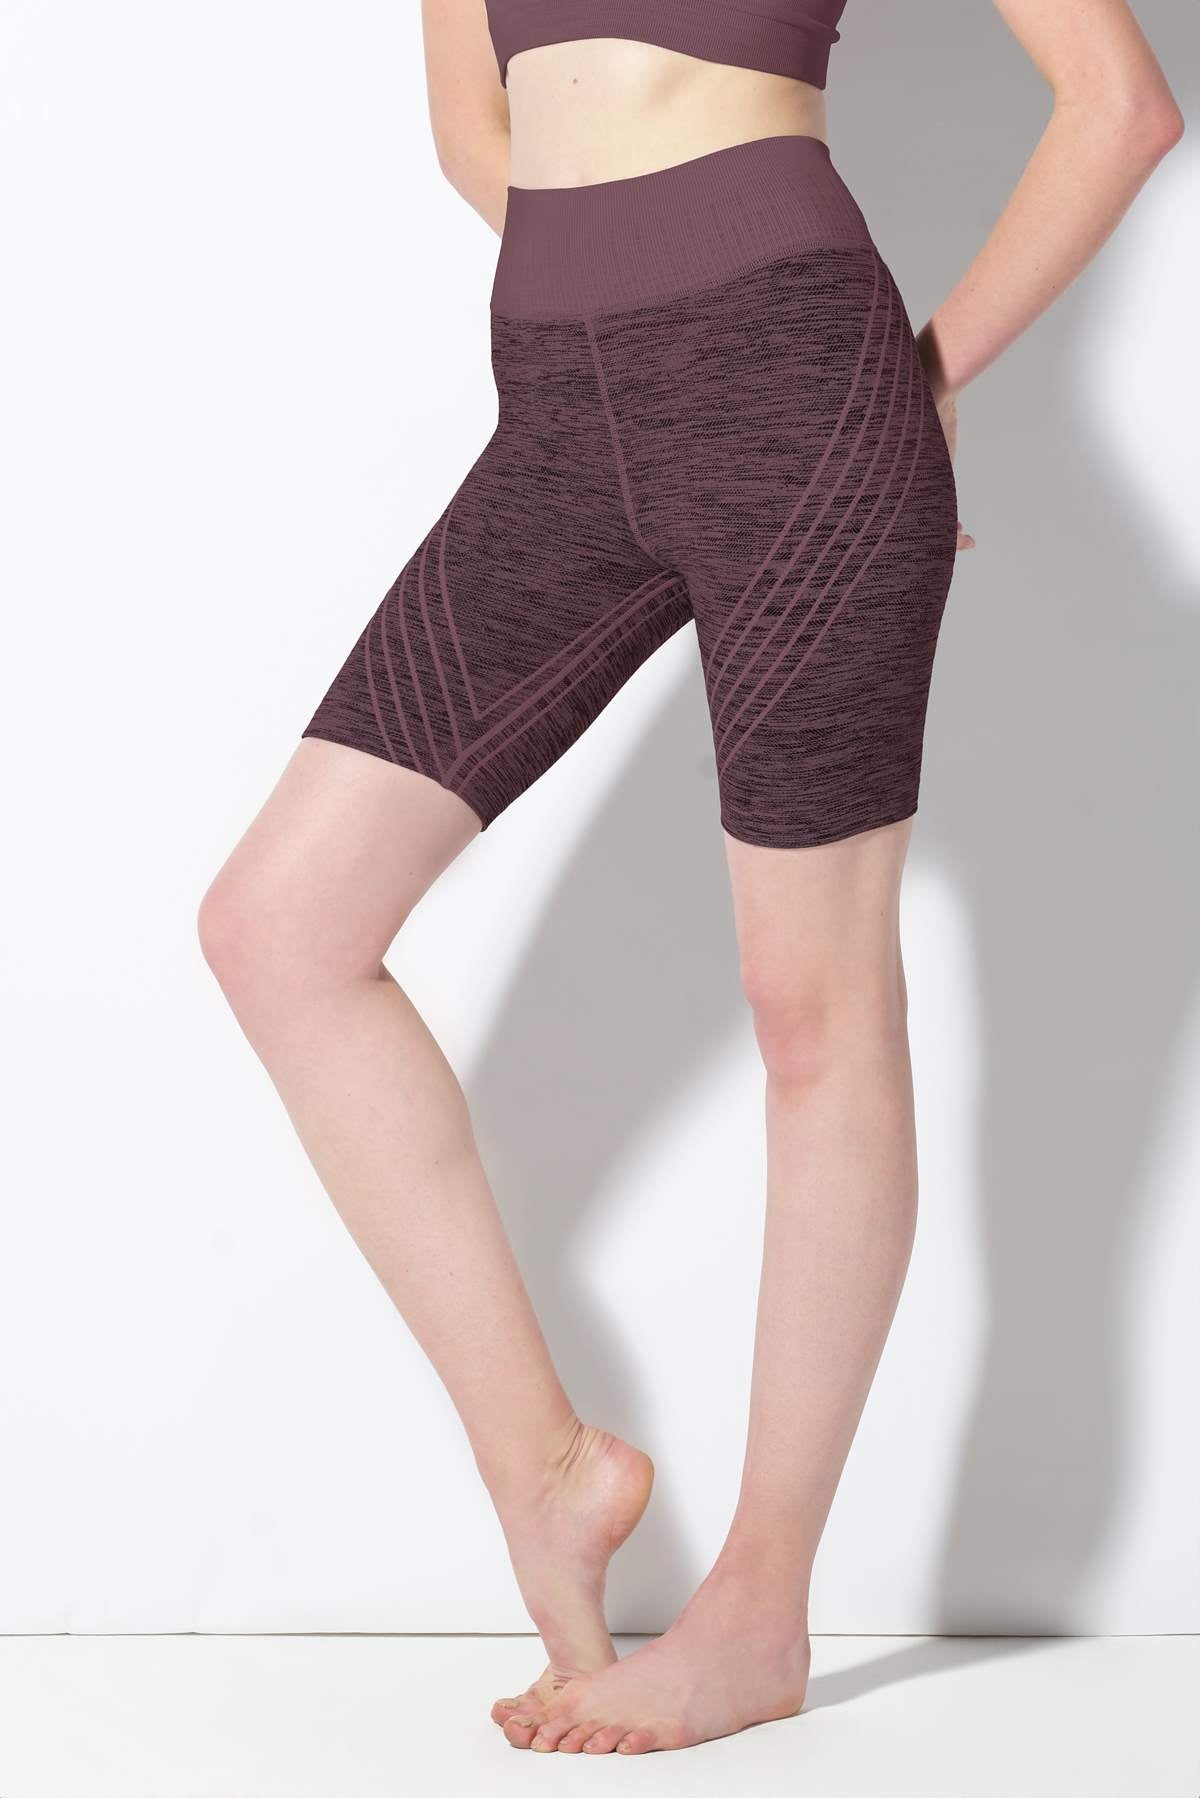 Danielle Striped Biker Short in Huckleberry